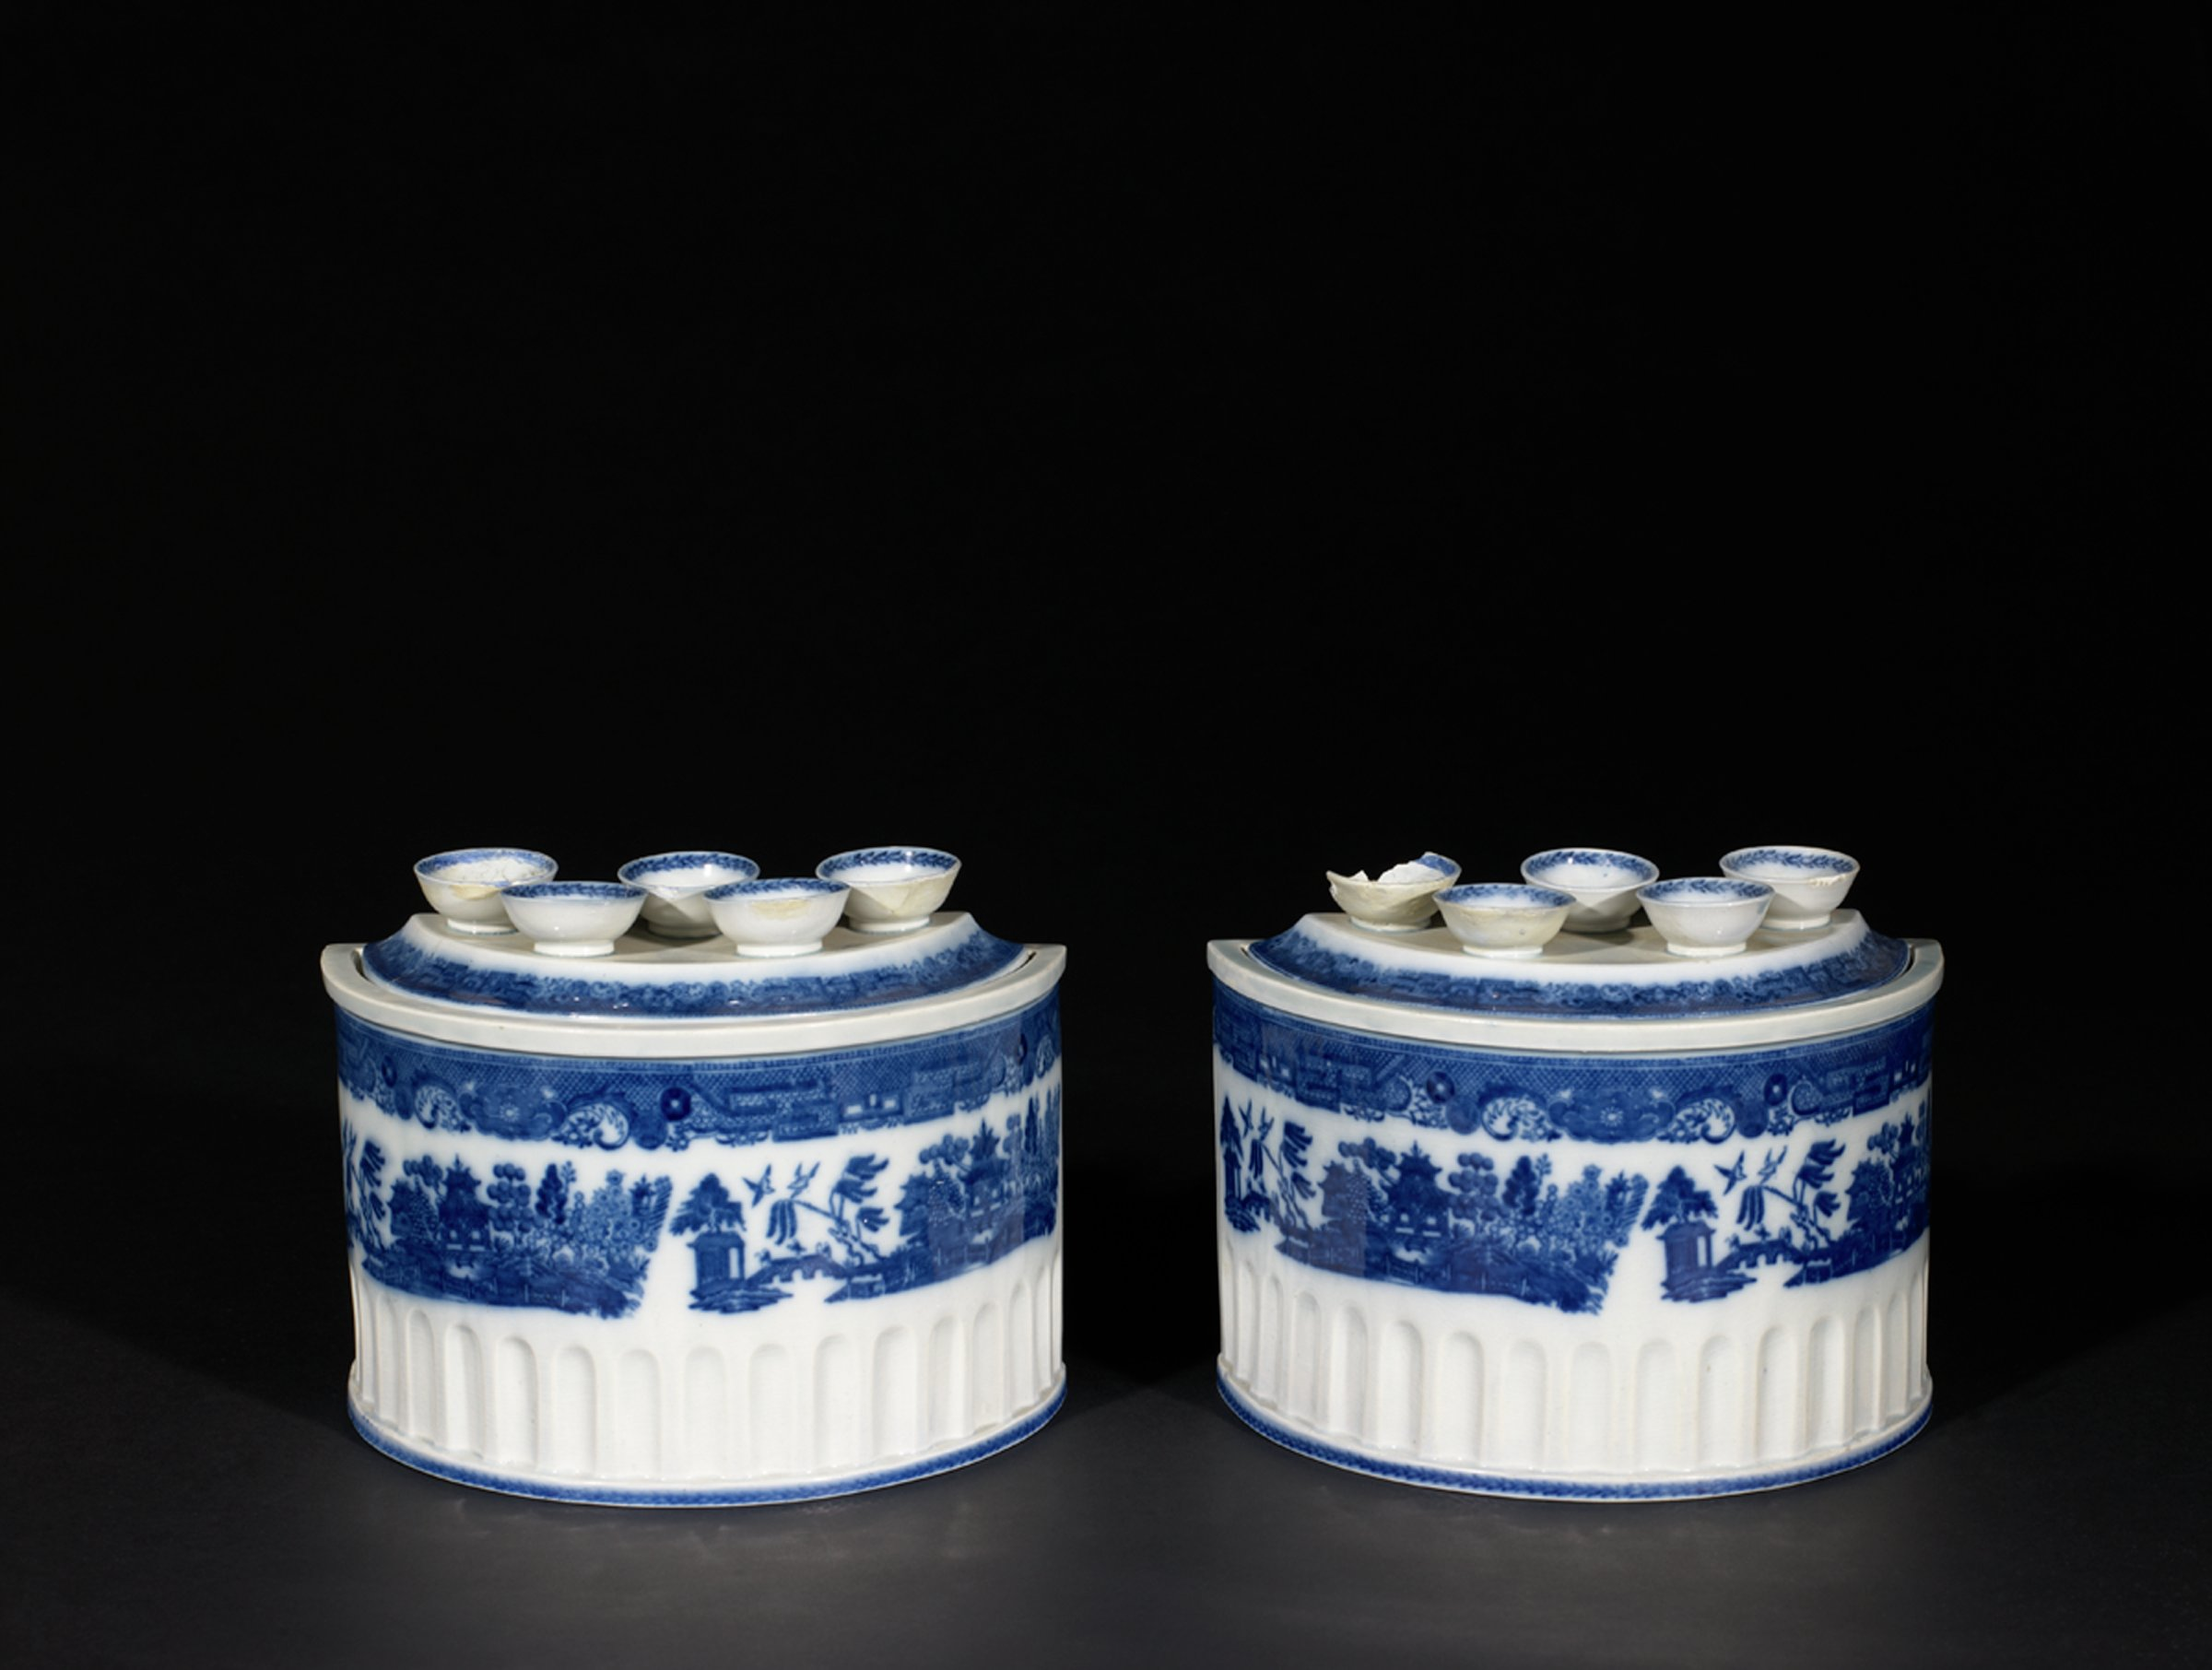 Pair of porcelain bulb pots of demilune shape with fluted lower body and printed cobalt blue decoration of a landscape scene with temples, exotic foliage and birds below a band of scrolls and crosshatching, the conforming cover similarly decorated with five bulb holders each highlighted with a cobalt blue band.